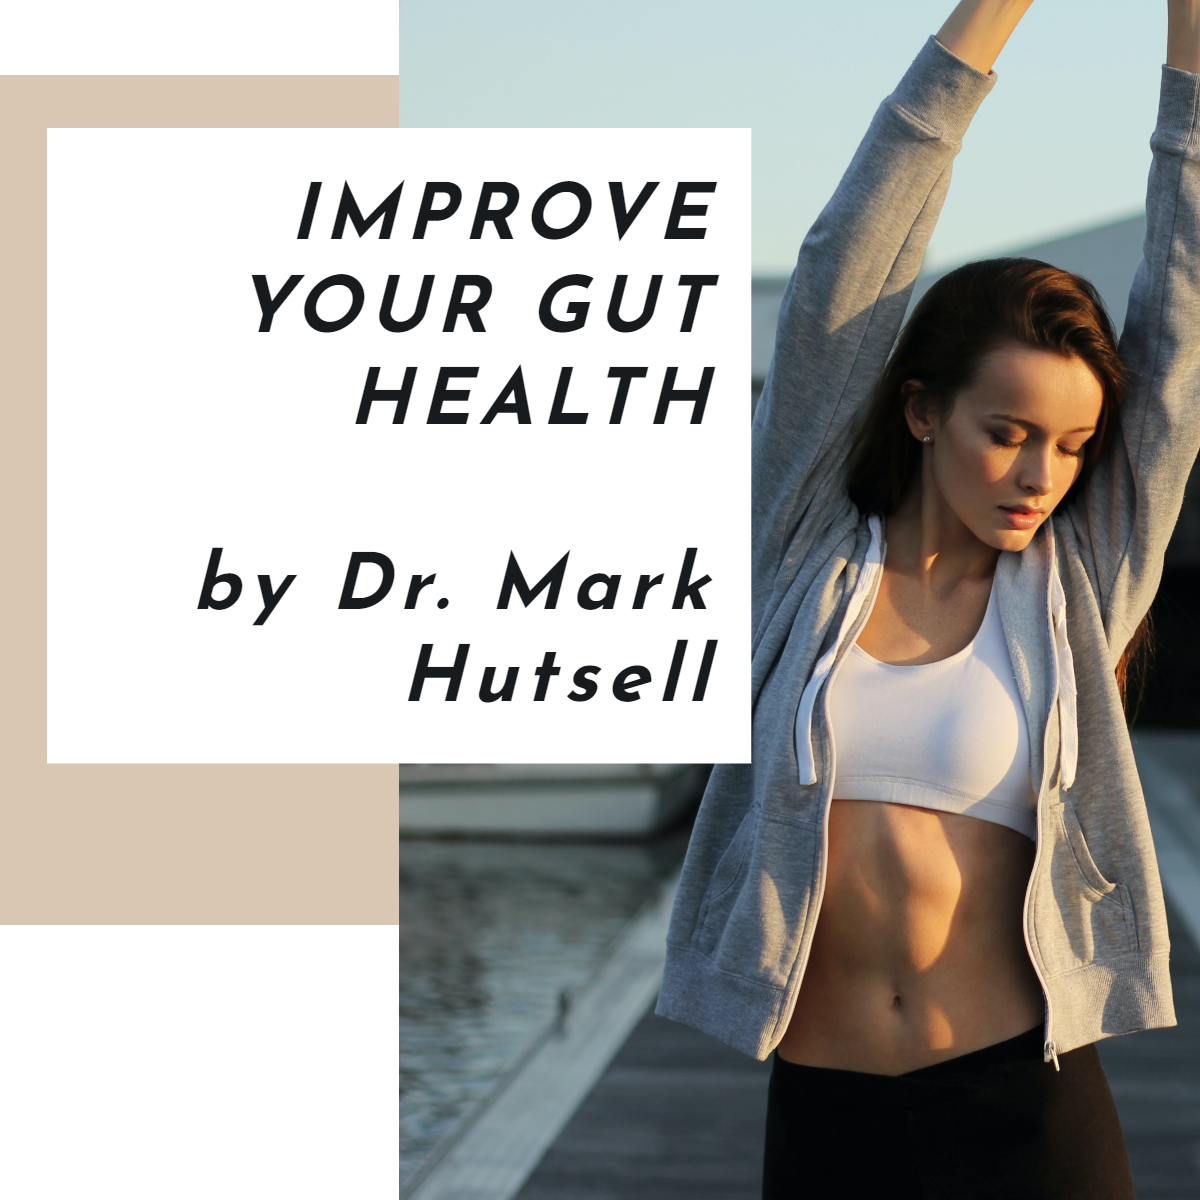 gut health article 2021